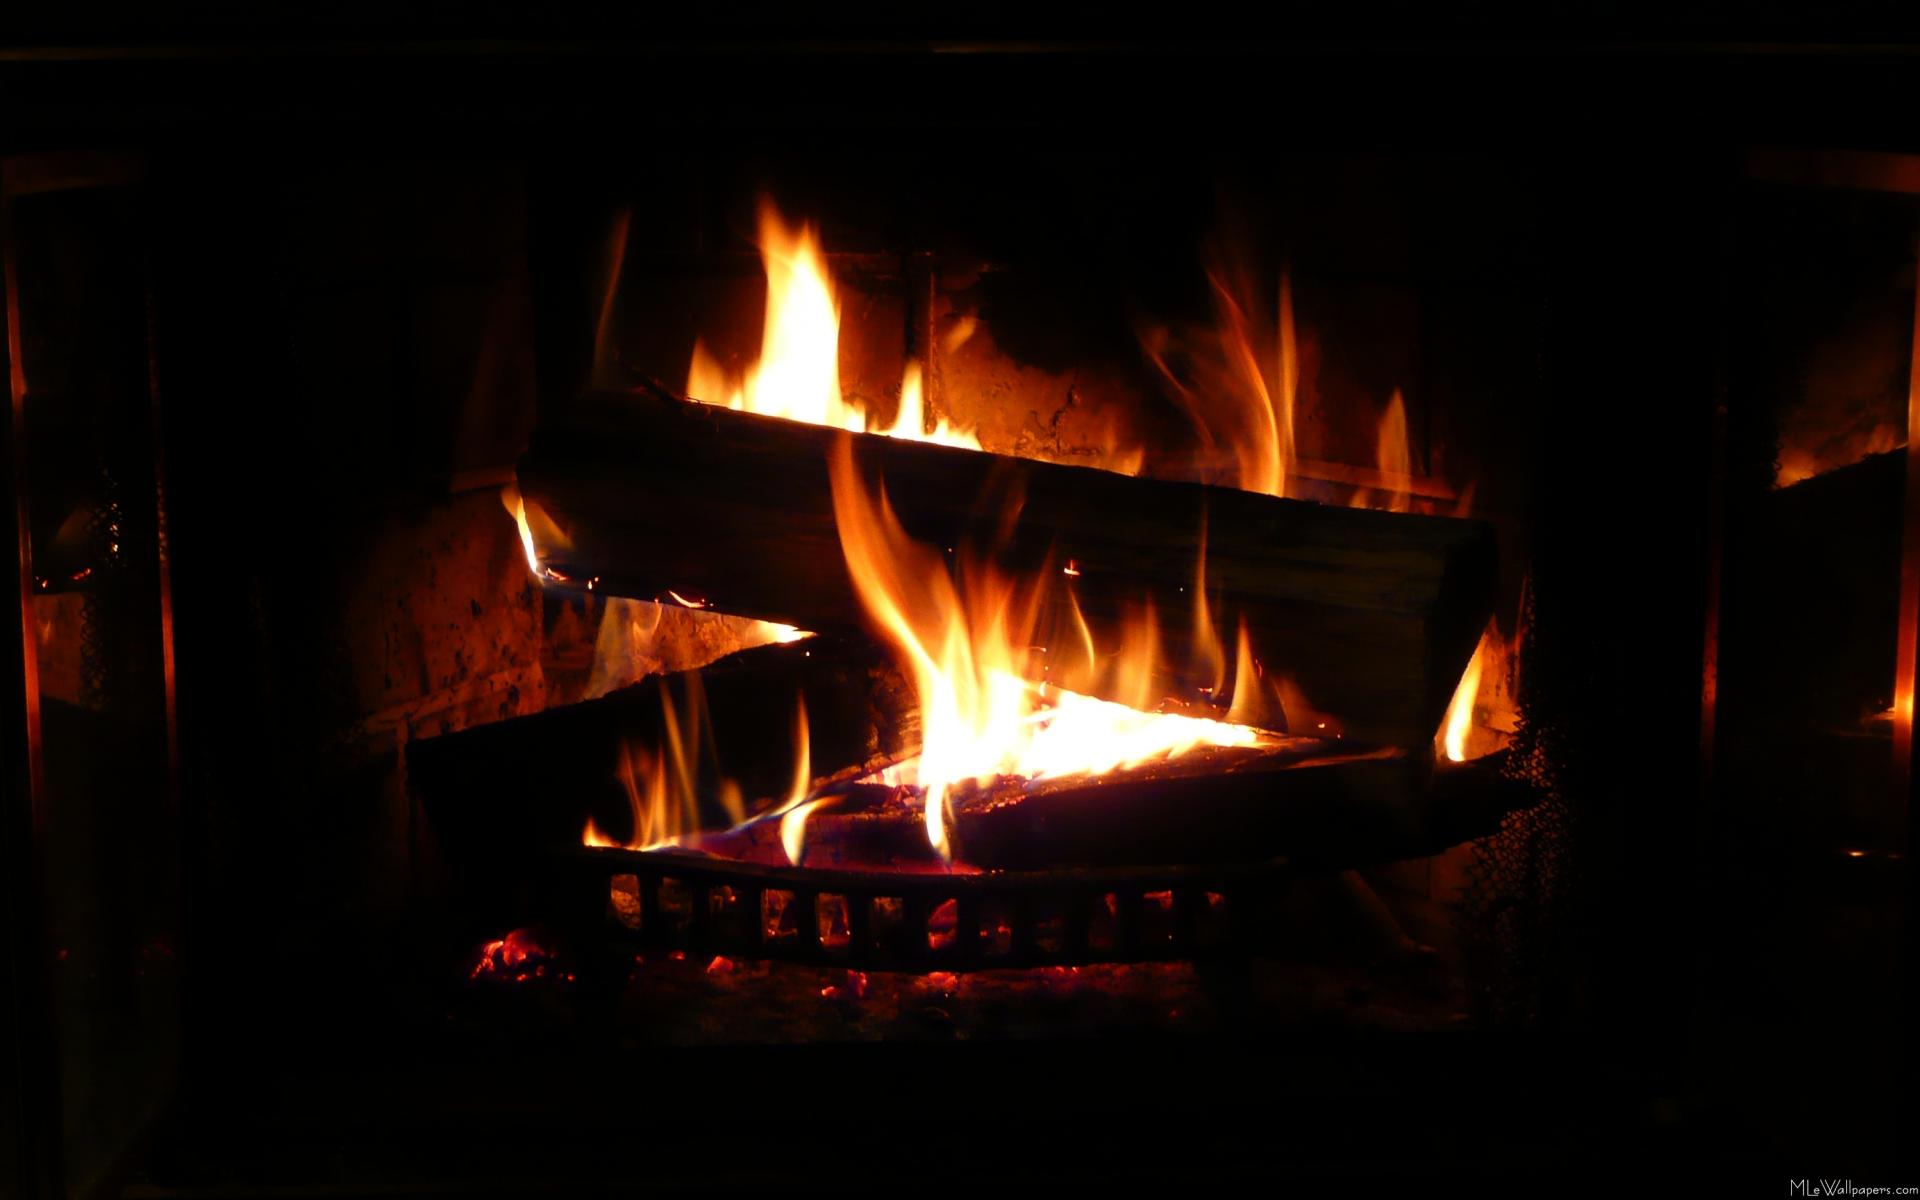 Fireplace Wallpaper Hd Fireplace widescreen 1920x1200